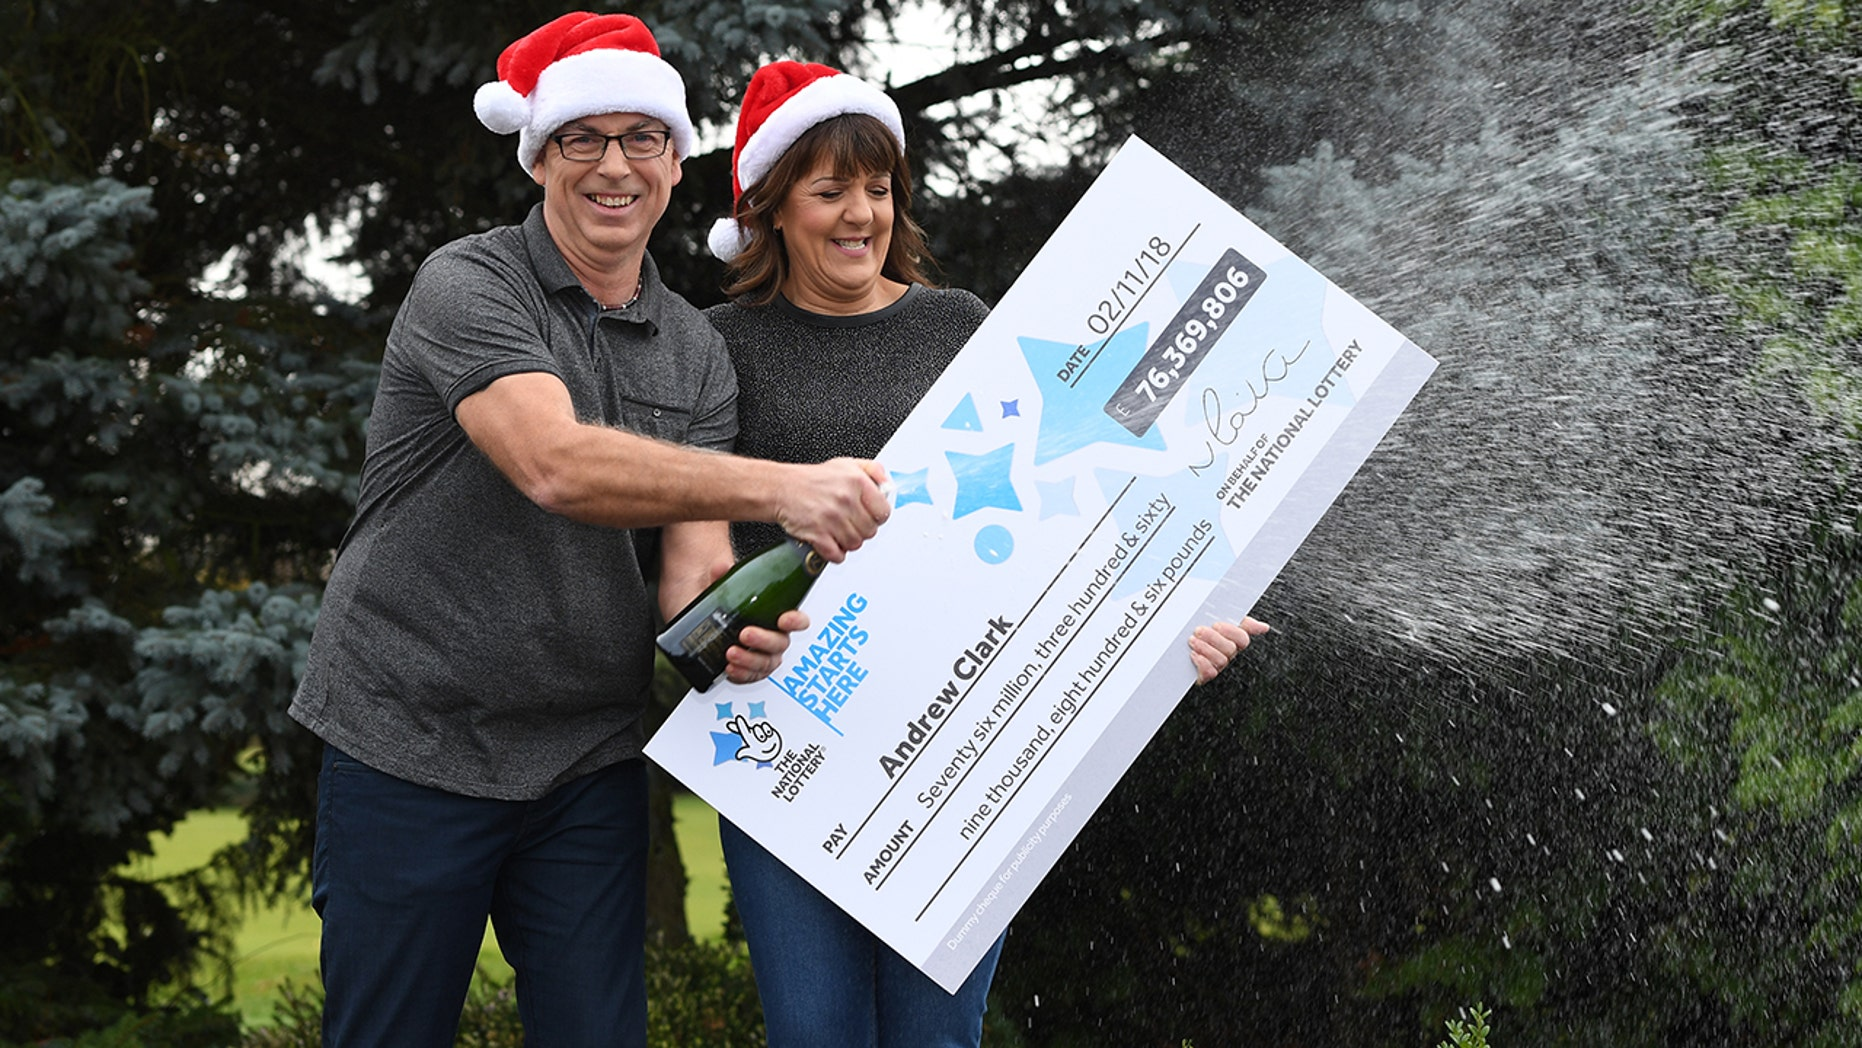 Andrew Clark, 51, from Boston, Lincolnshire, with his partner Trisha Fairhurst, celebrates his £76,369,806.80 EuroMillions jackpot win from the draw on Friday, Nov. 2, 2018, at Belton Woods Hotel, Grantham. (Getty Images)